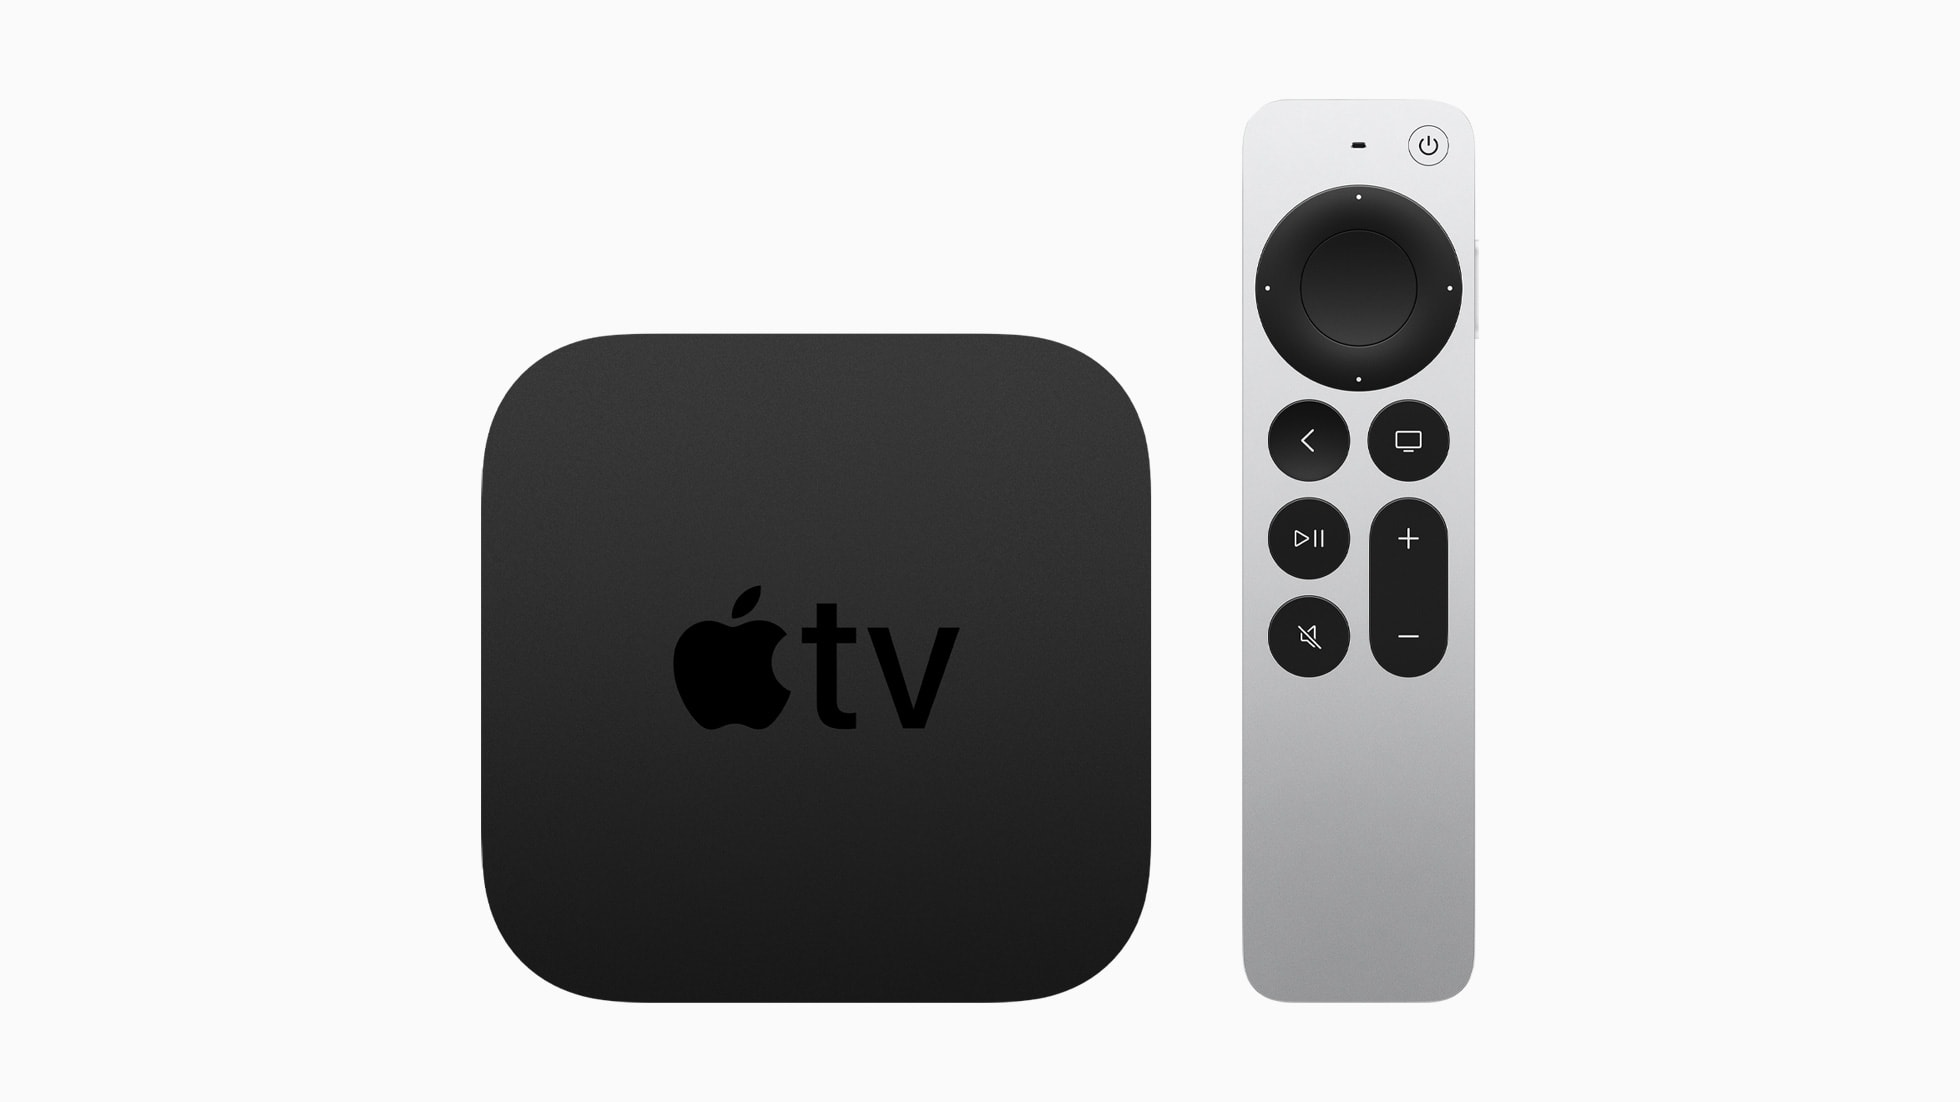 Apple's new Apple TV 4K with redesigned Siri Remote